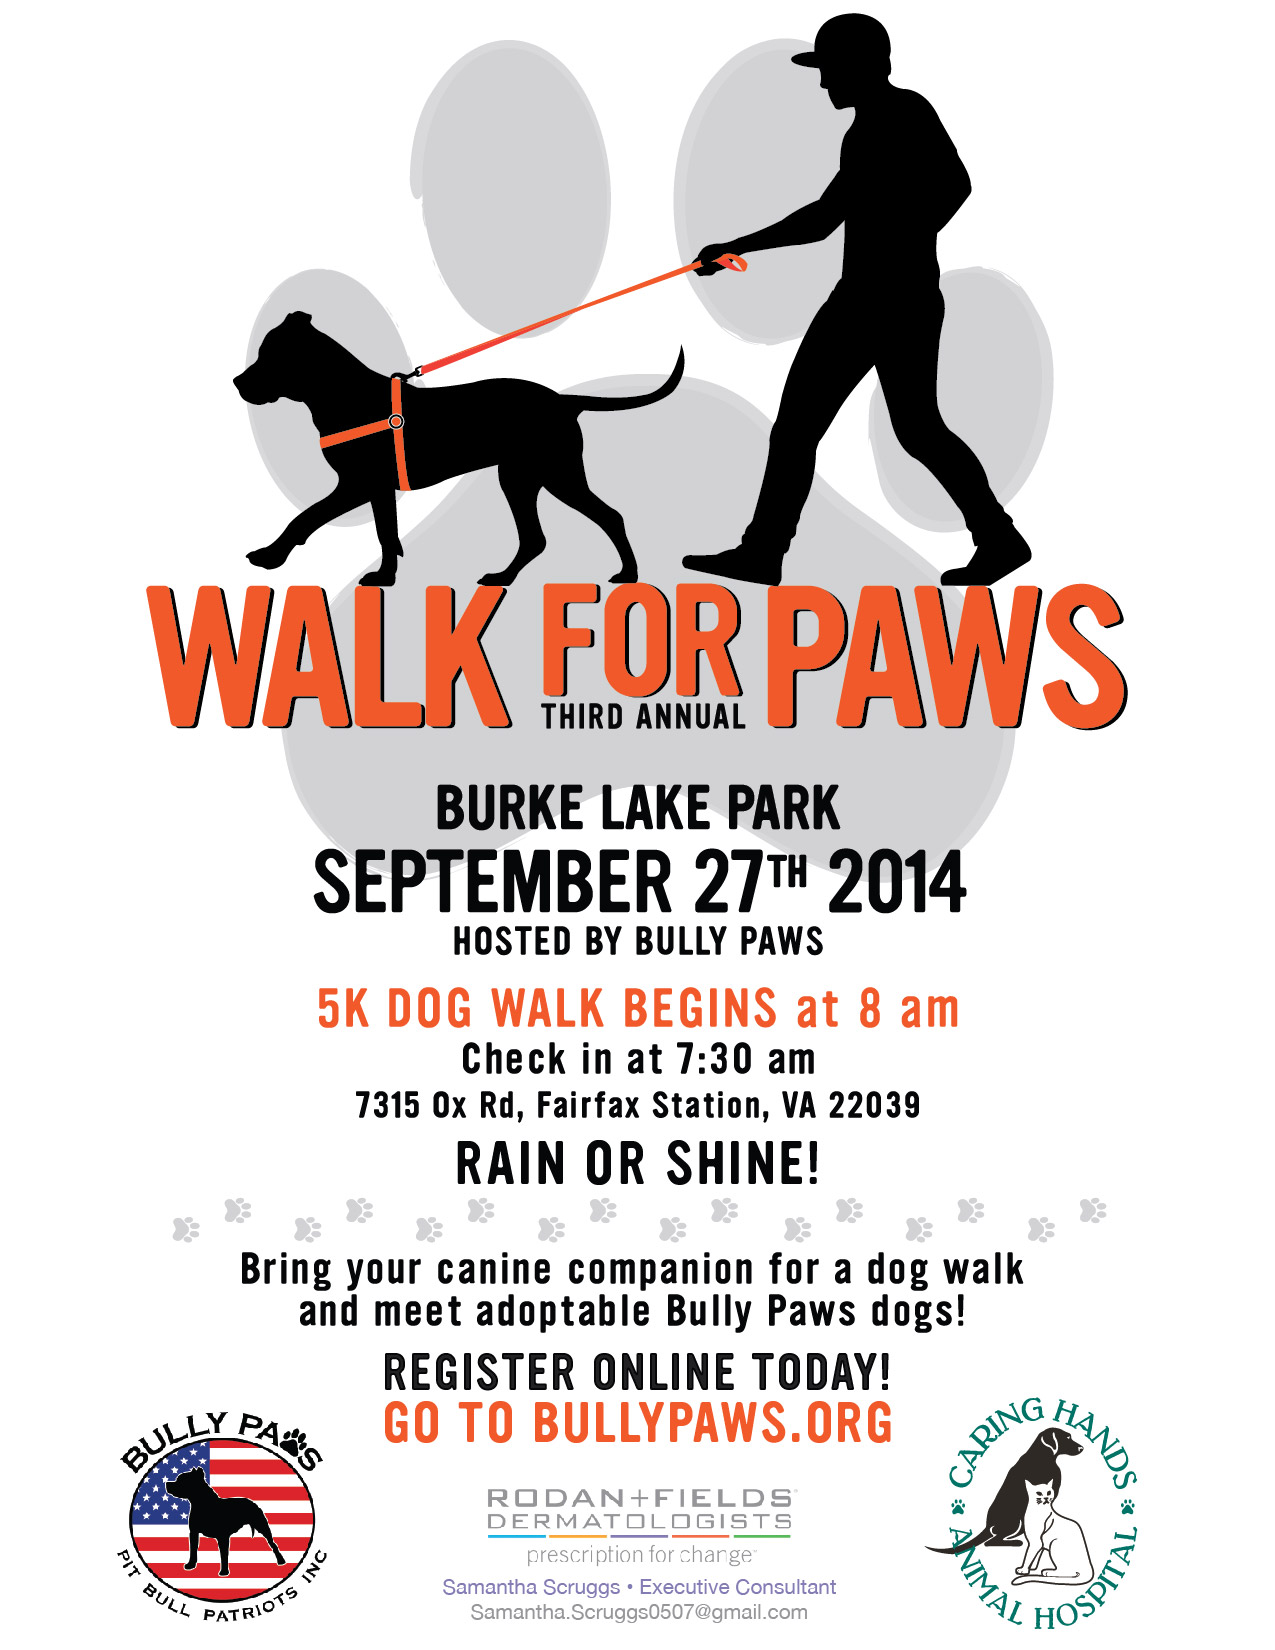 2014 Walk for Paws 5k flier v2